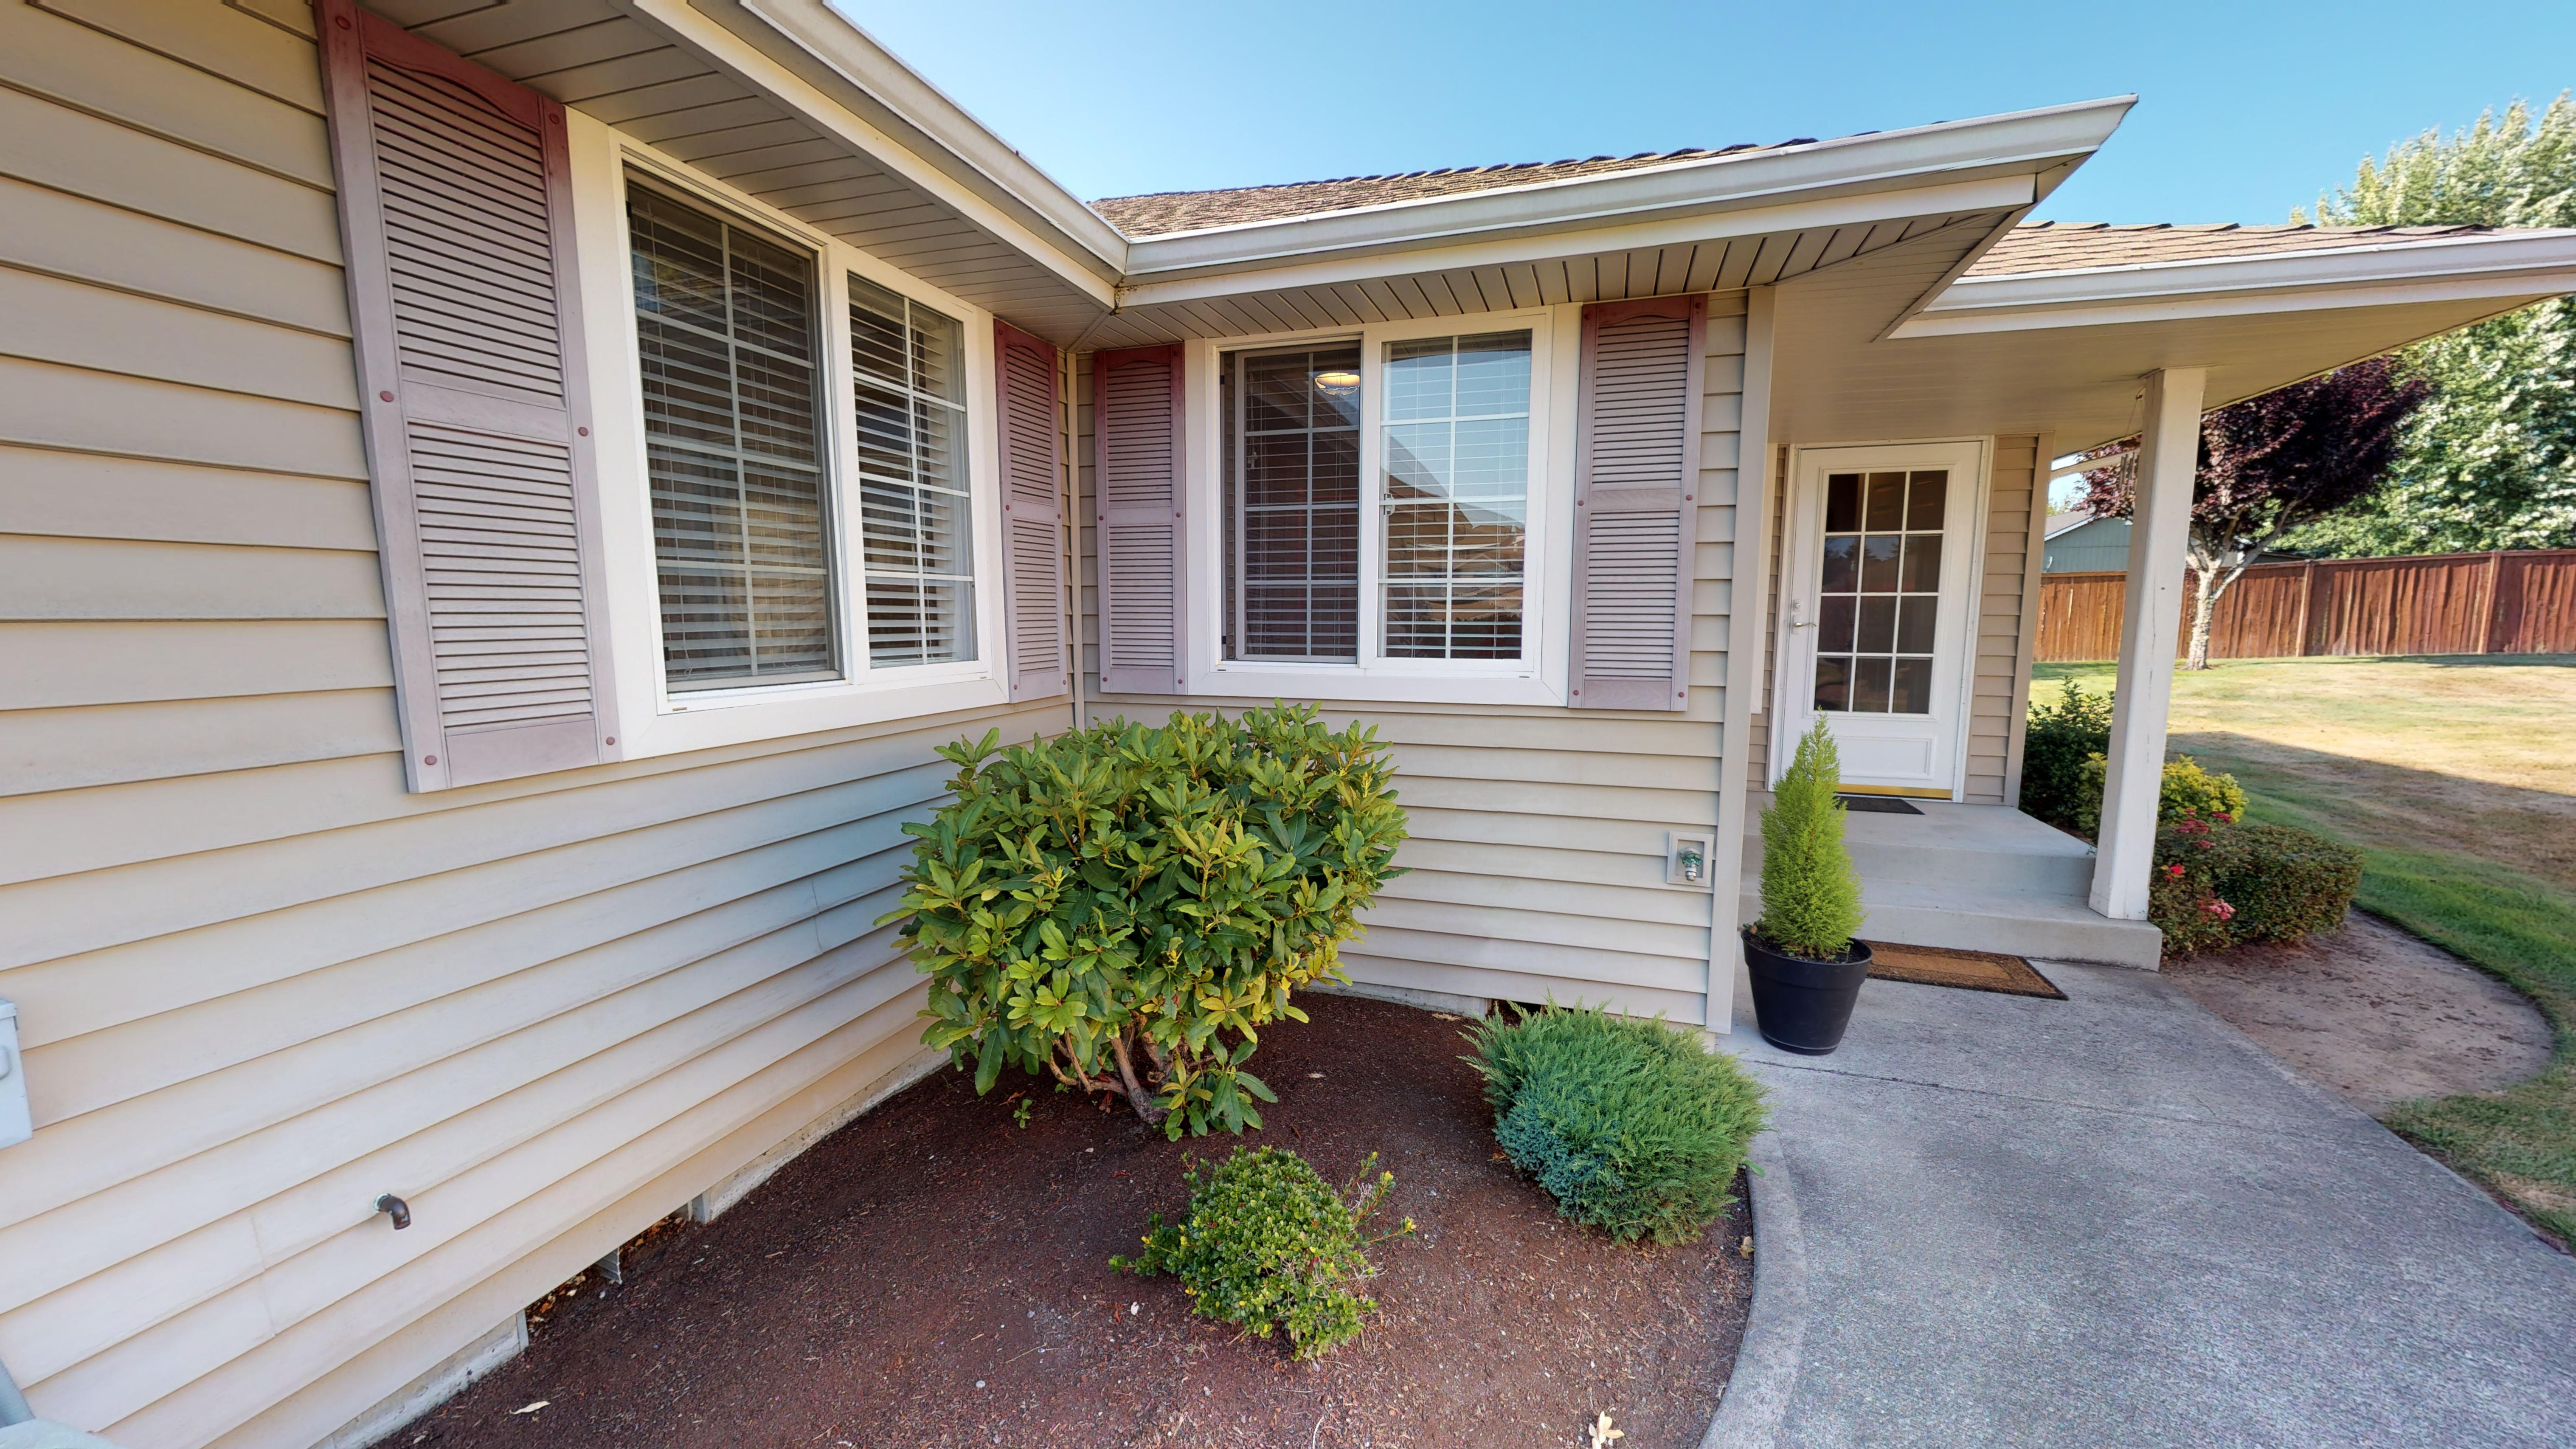 279k-3bd2ba-1188-sqft-2-car-garage-1409-102nd-St-E-Tacoma-WA-07292019_215232